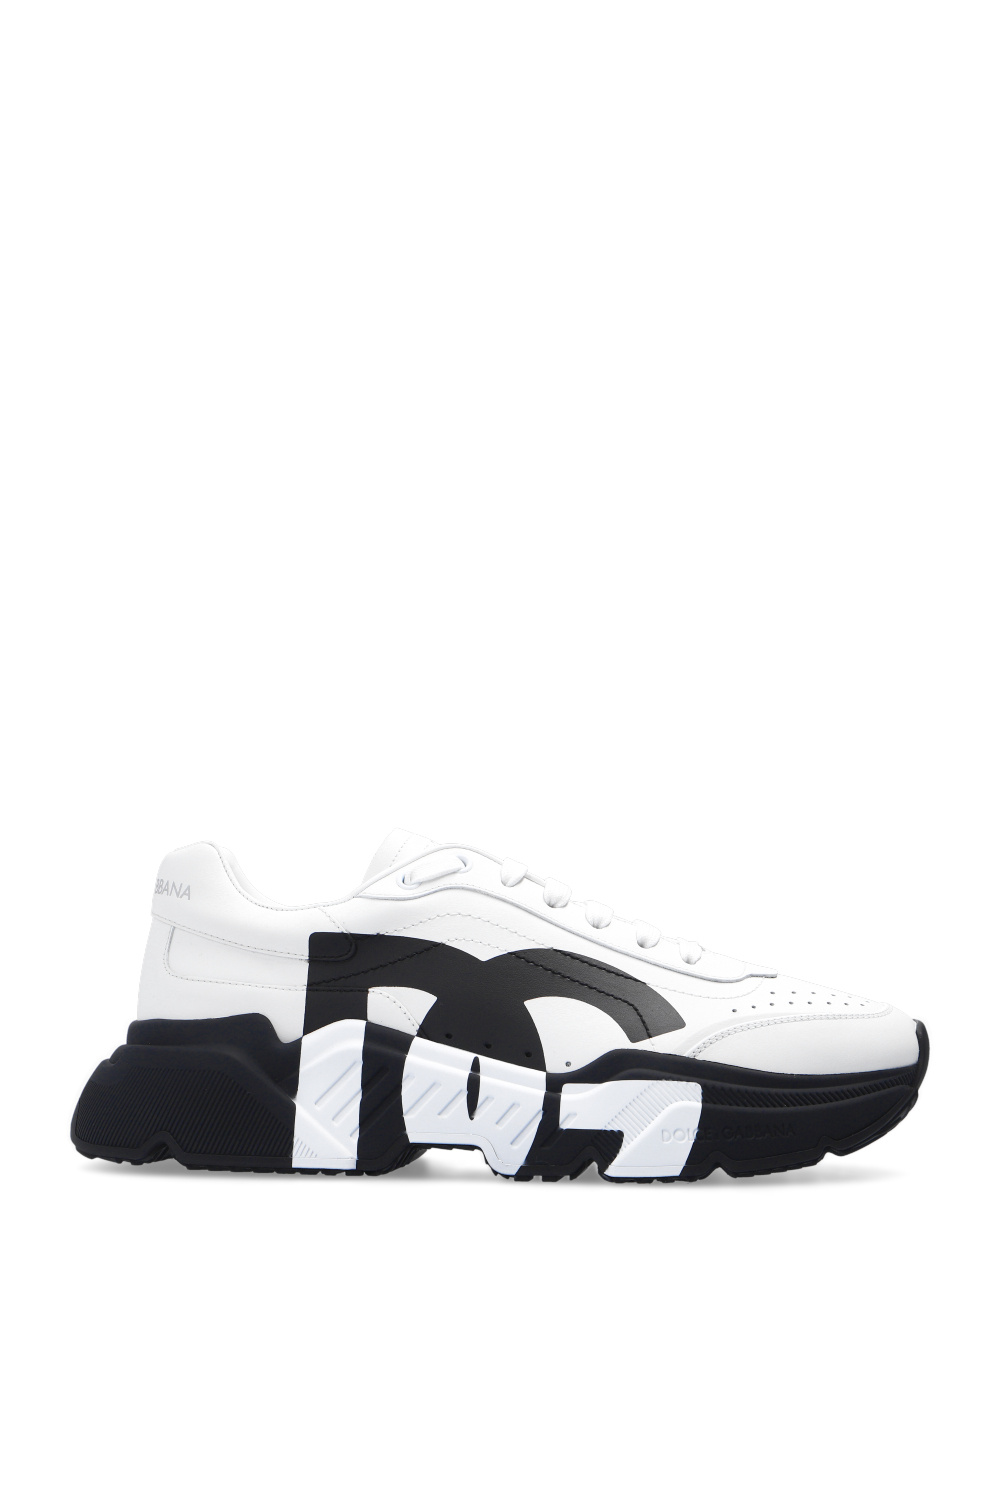 Dolce & Gabbana 'Daymaster' sneakers